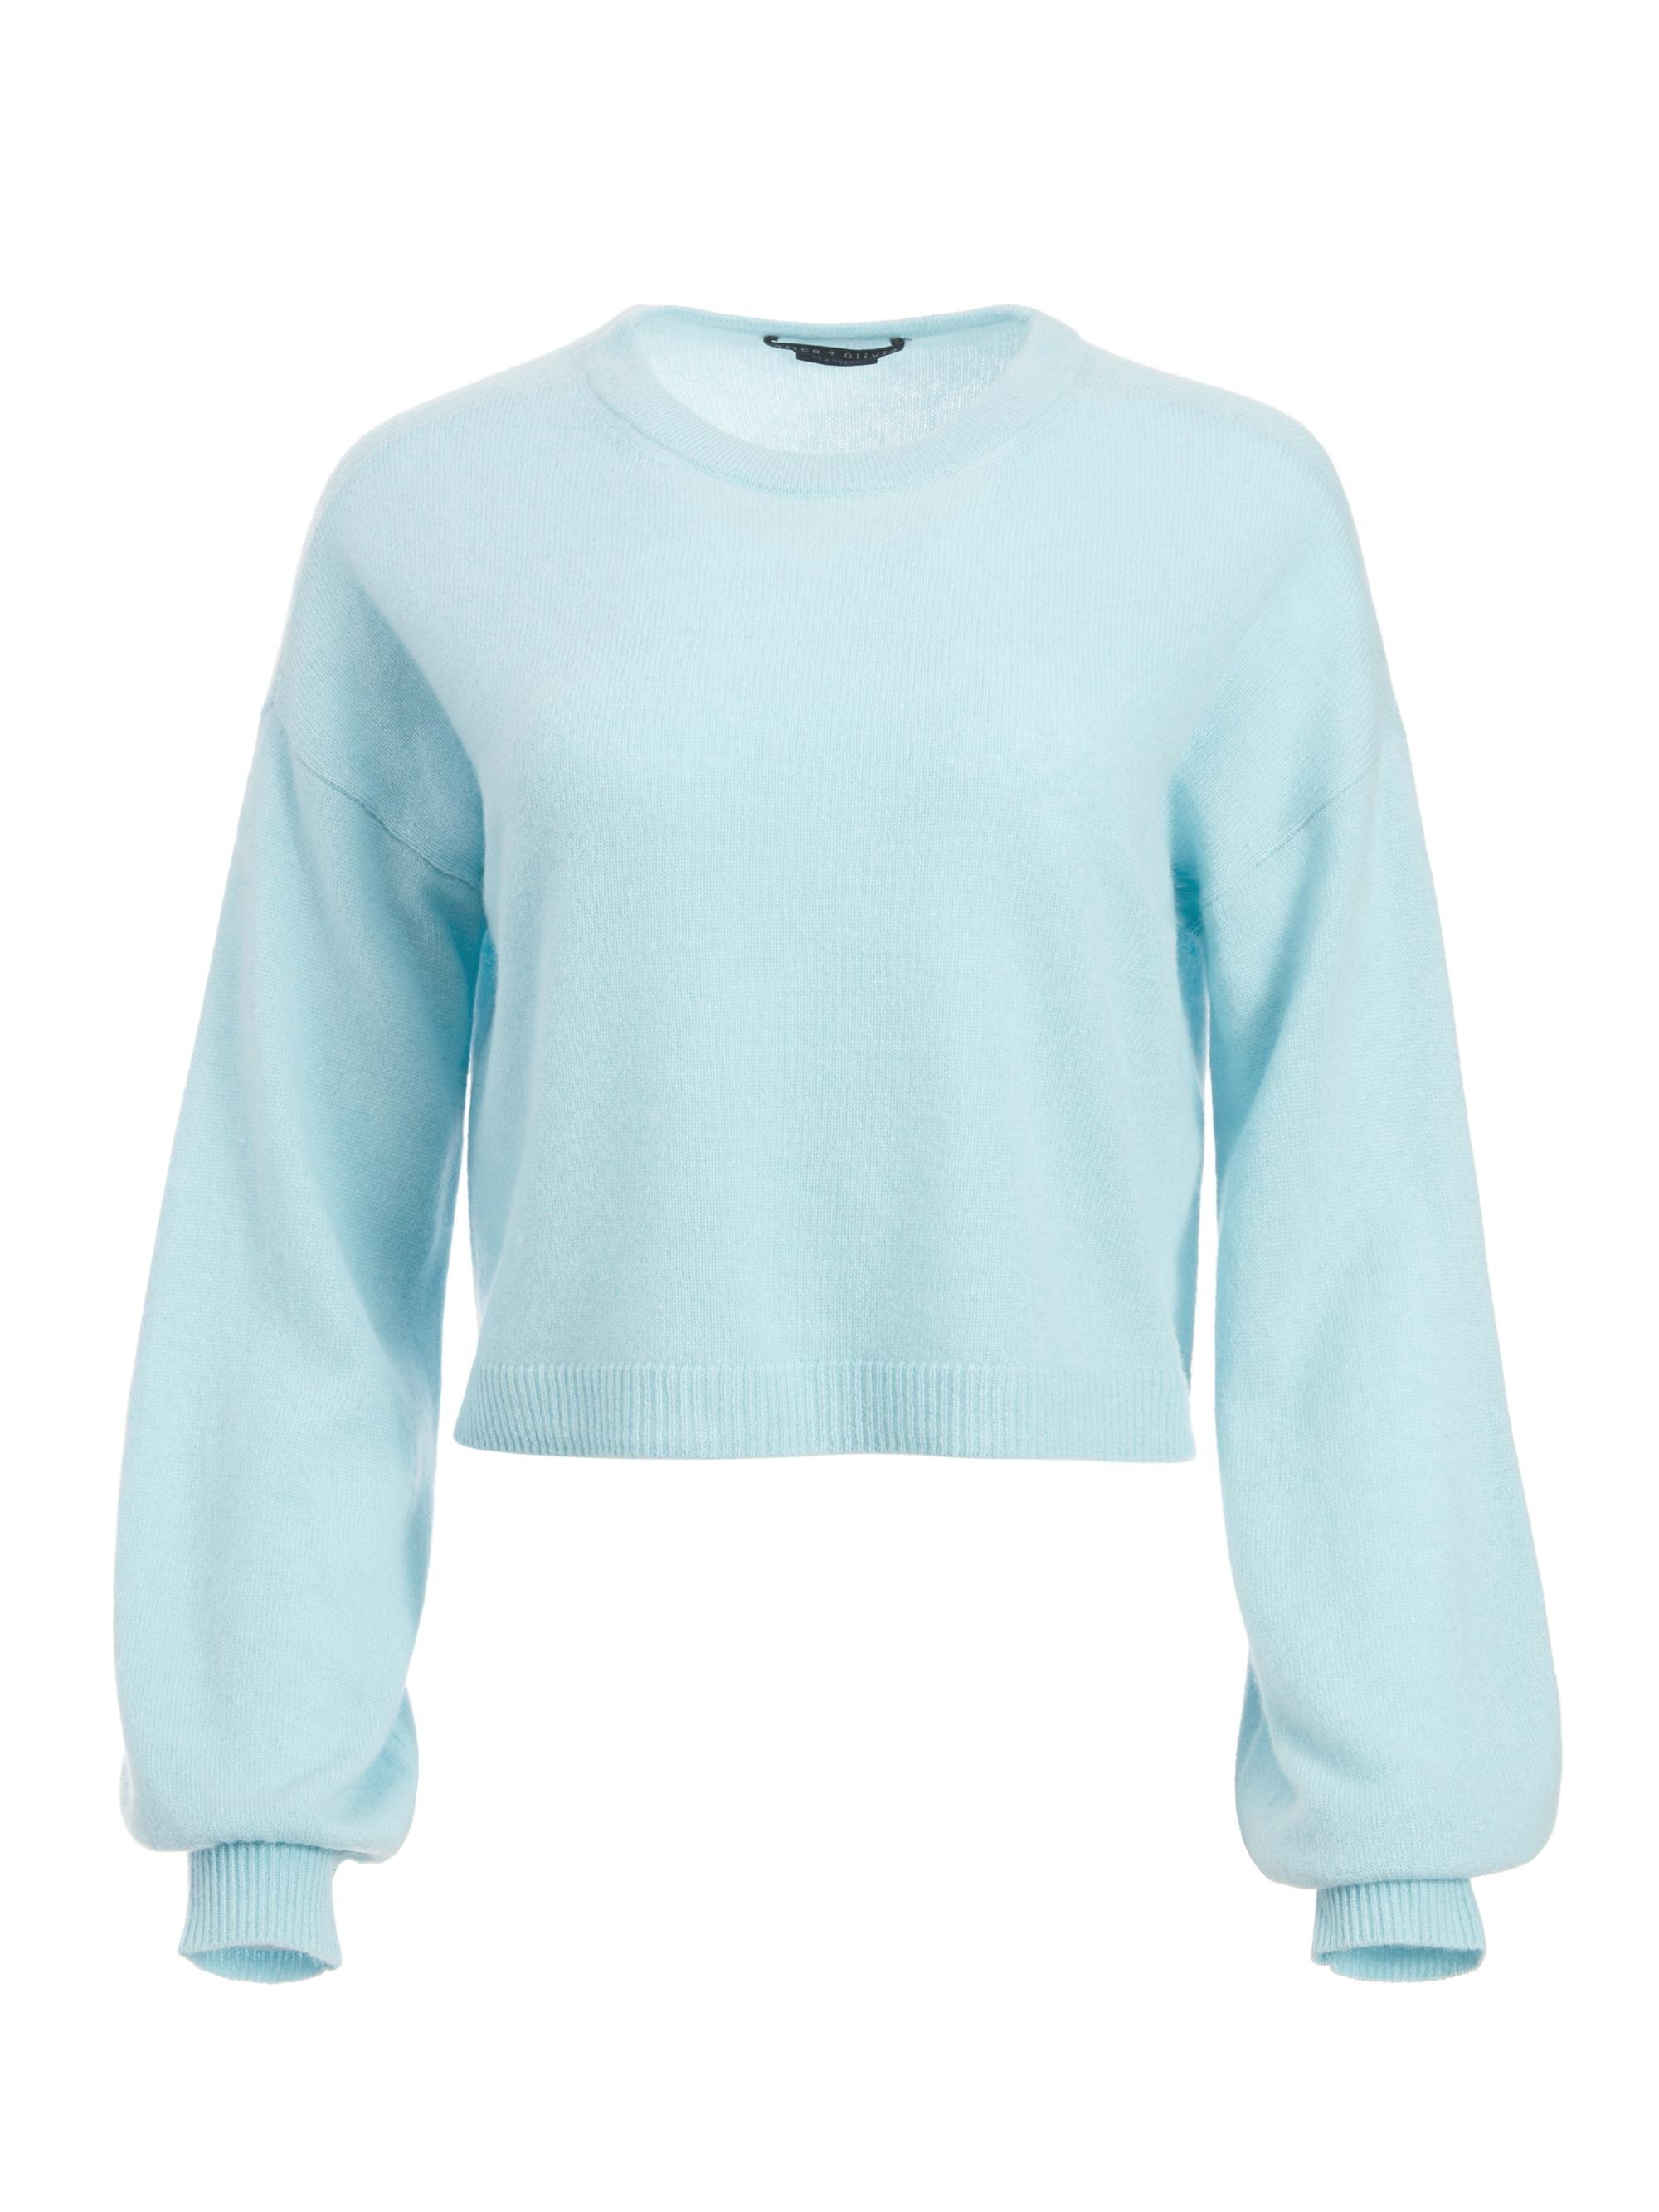 ANSLEY WIDE SLEEVE CROPPED SWEATER 5